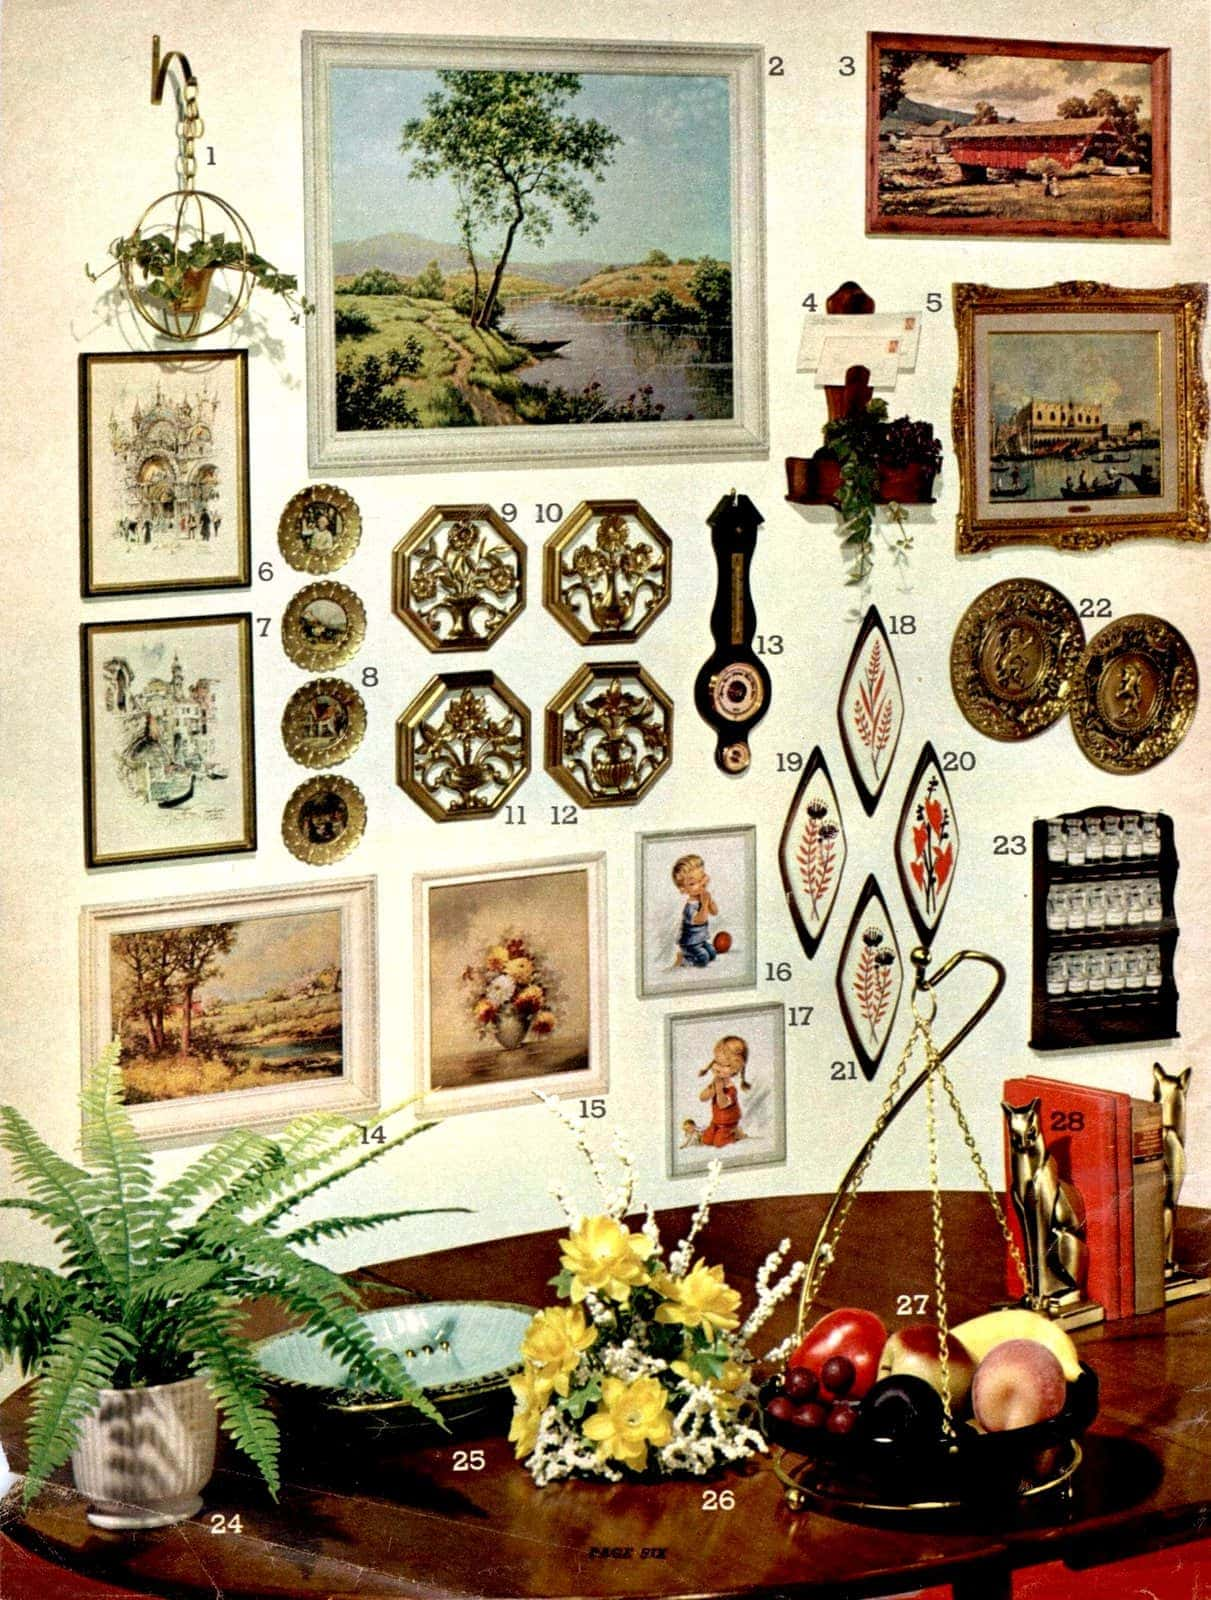 Wall decor and plaques, pictures, frames, decorative flower holders, fruit baskets, floral arrangements